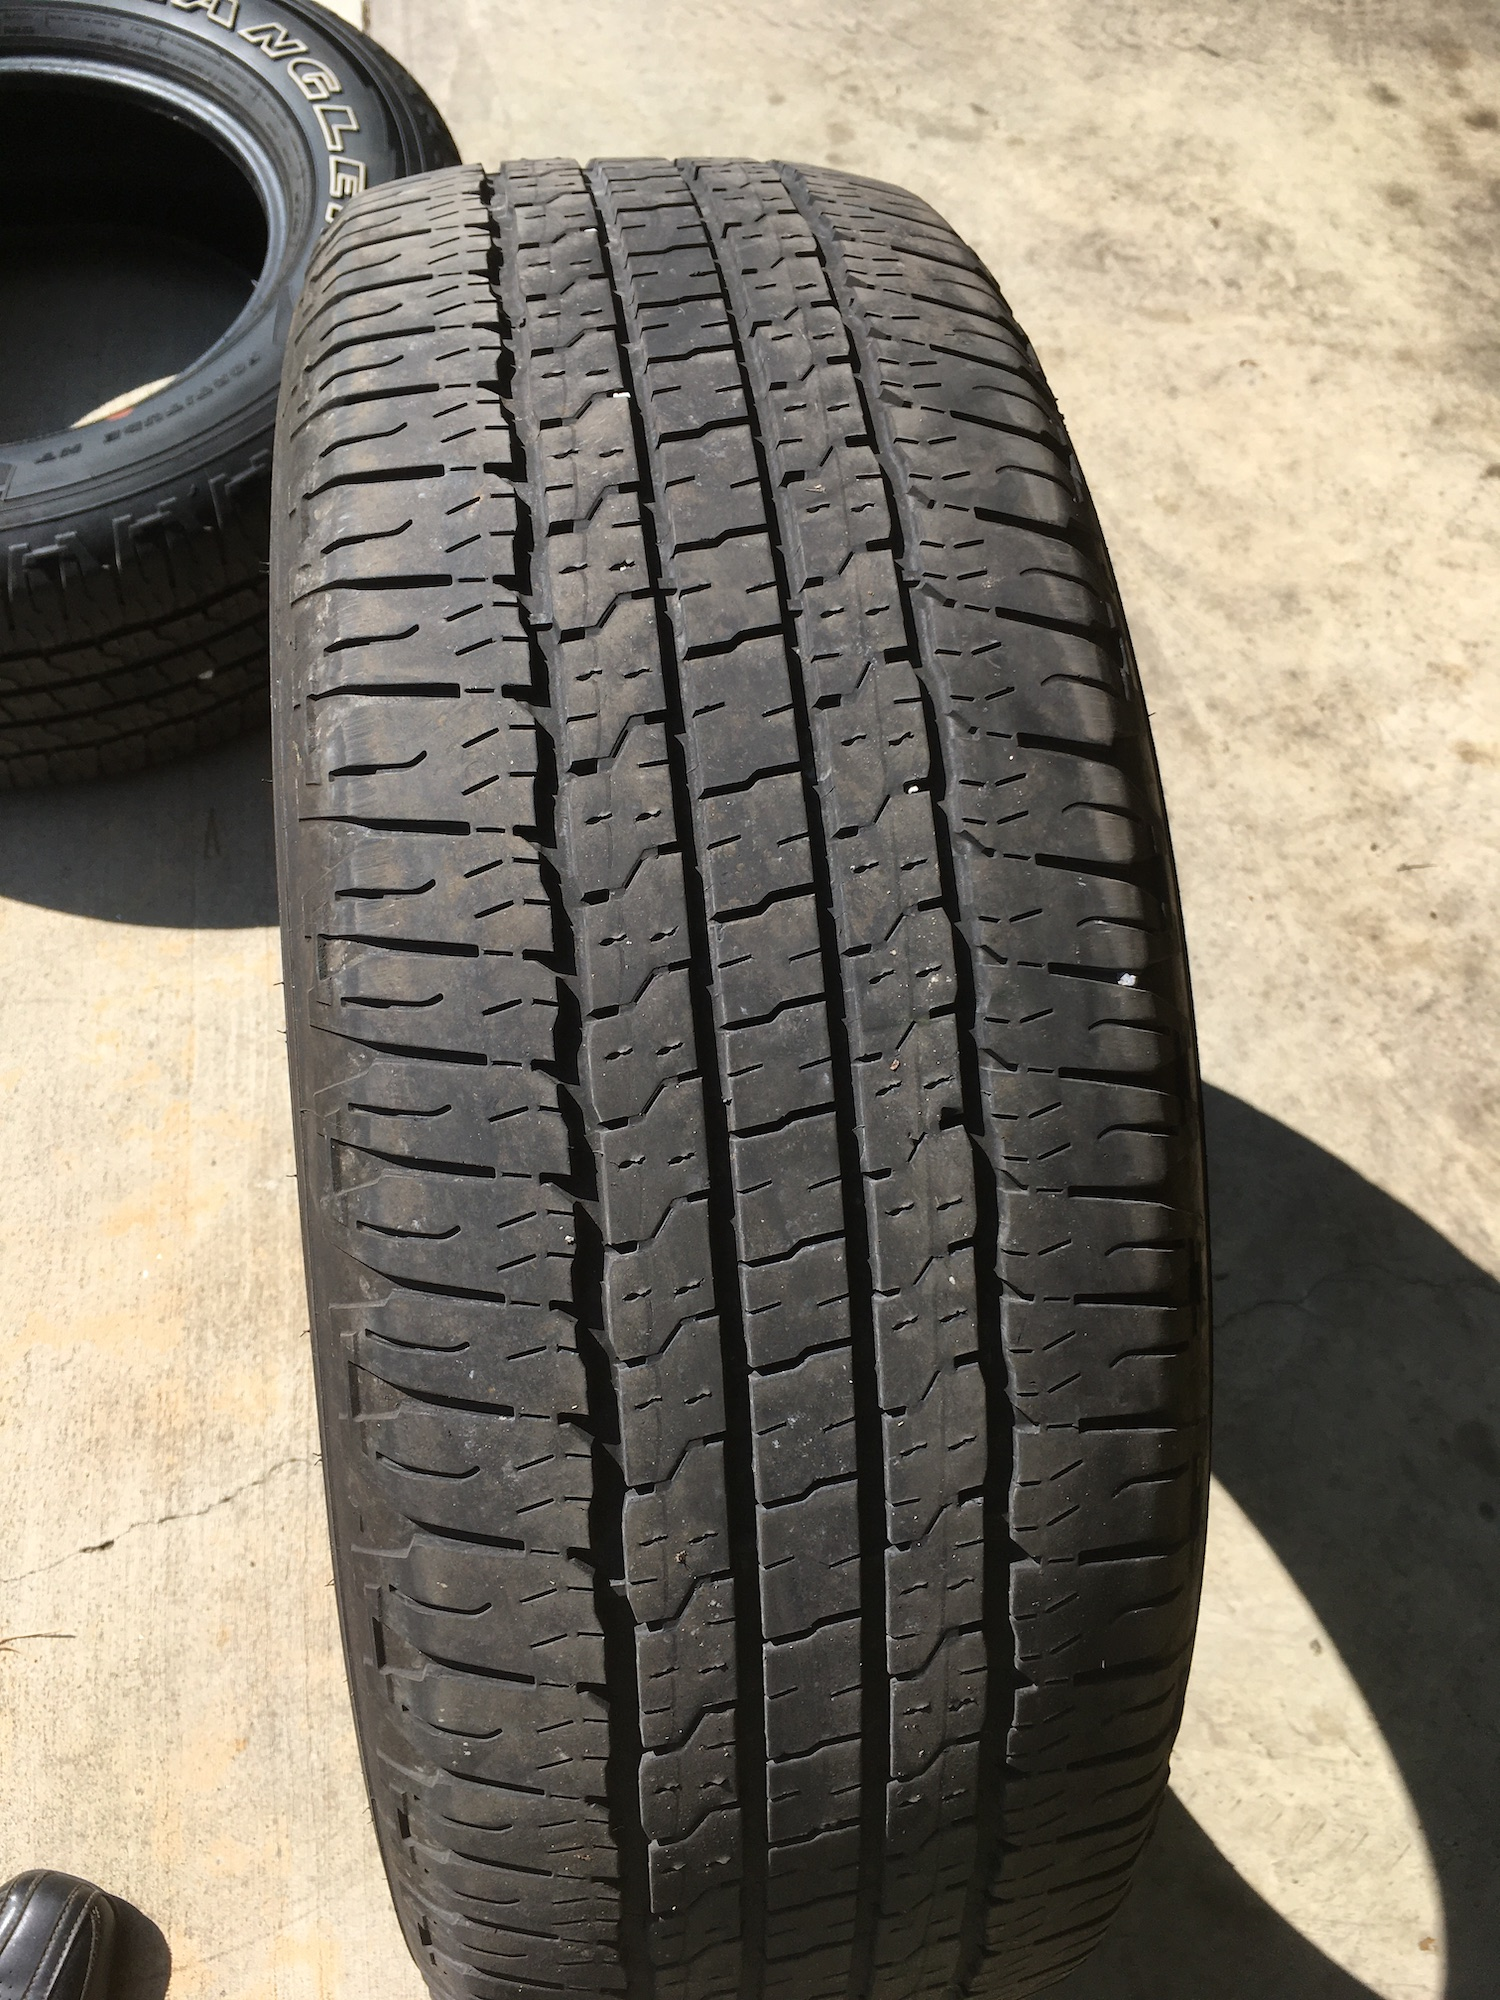 Goodyear-Tires-Ford-F150-04